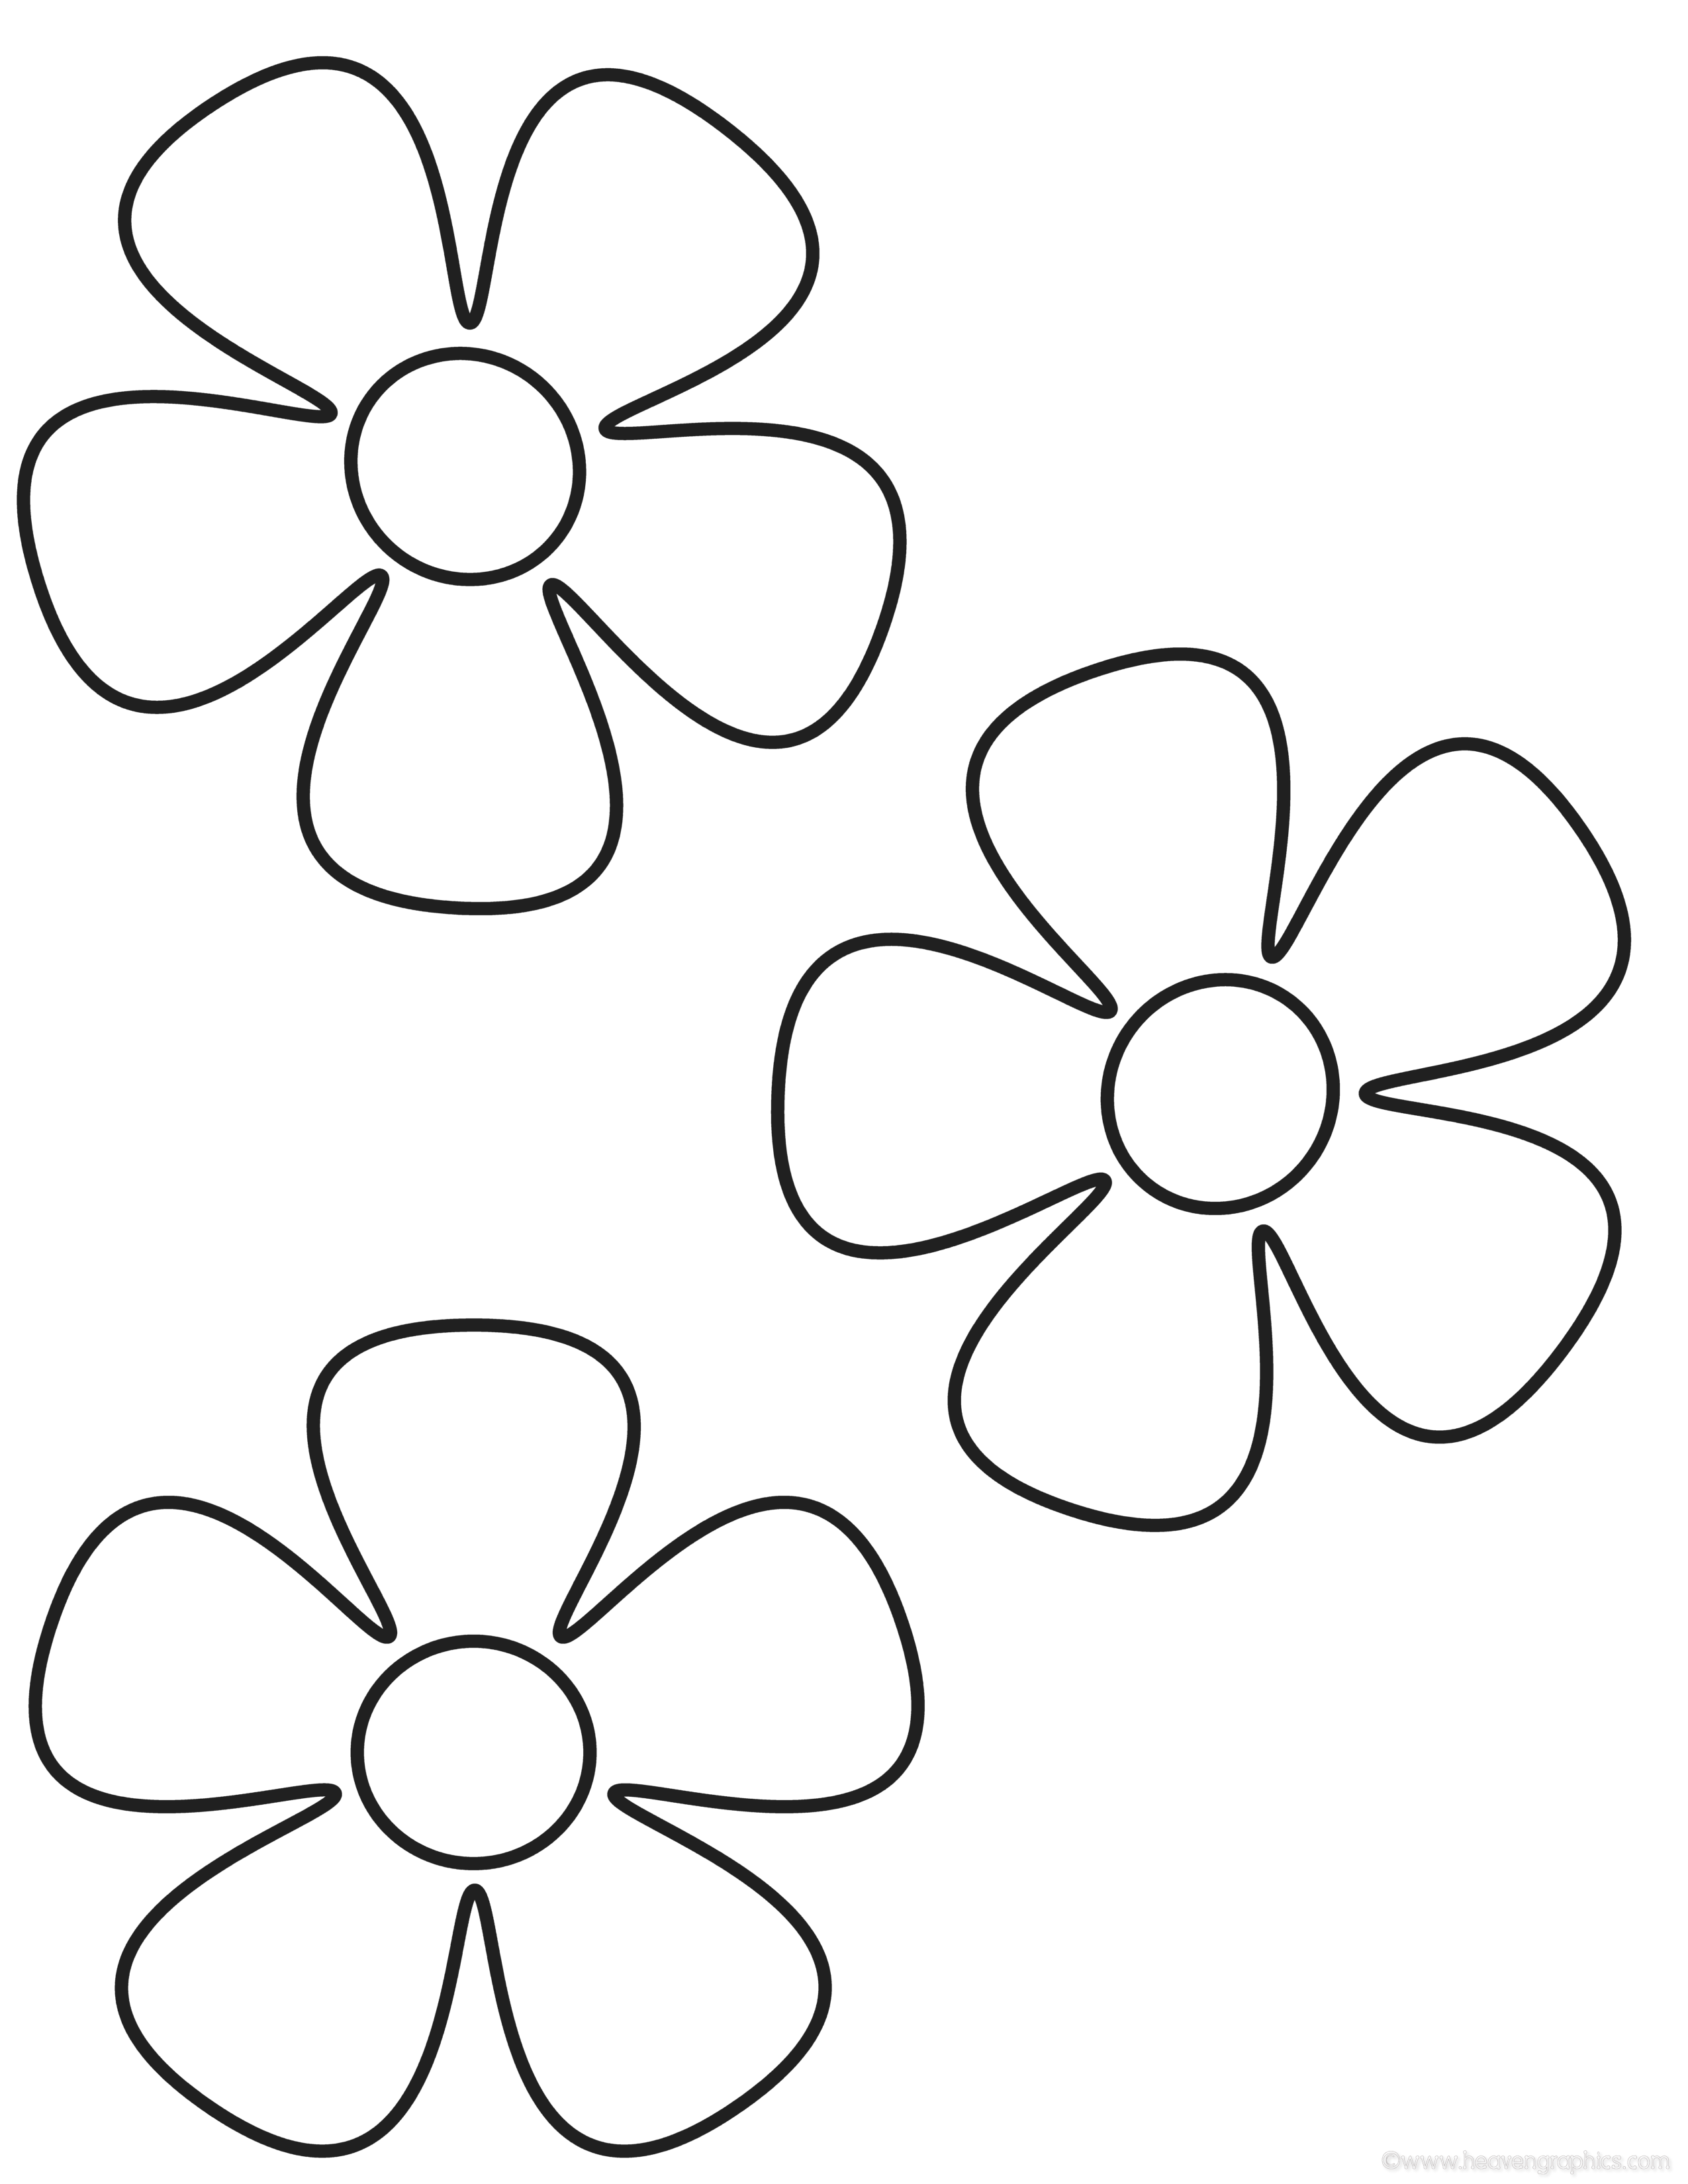 easy coloring pages of flowers simple flower coloring page clipart best of flowers pages coloring easy